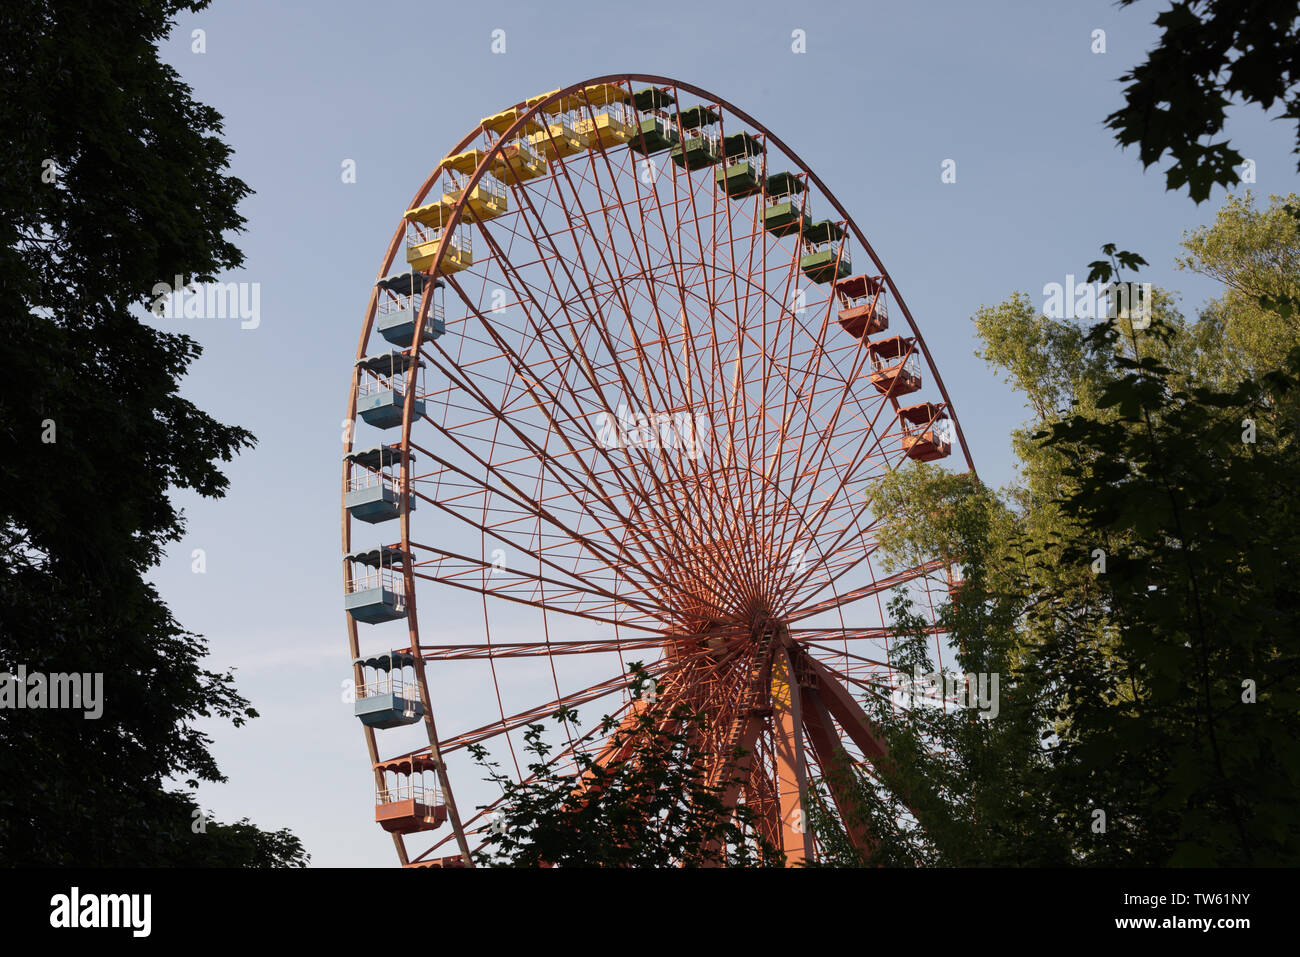 abandoned ferris wheel in spreepark, berlin, germany - Stock Image